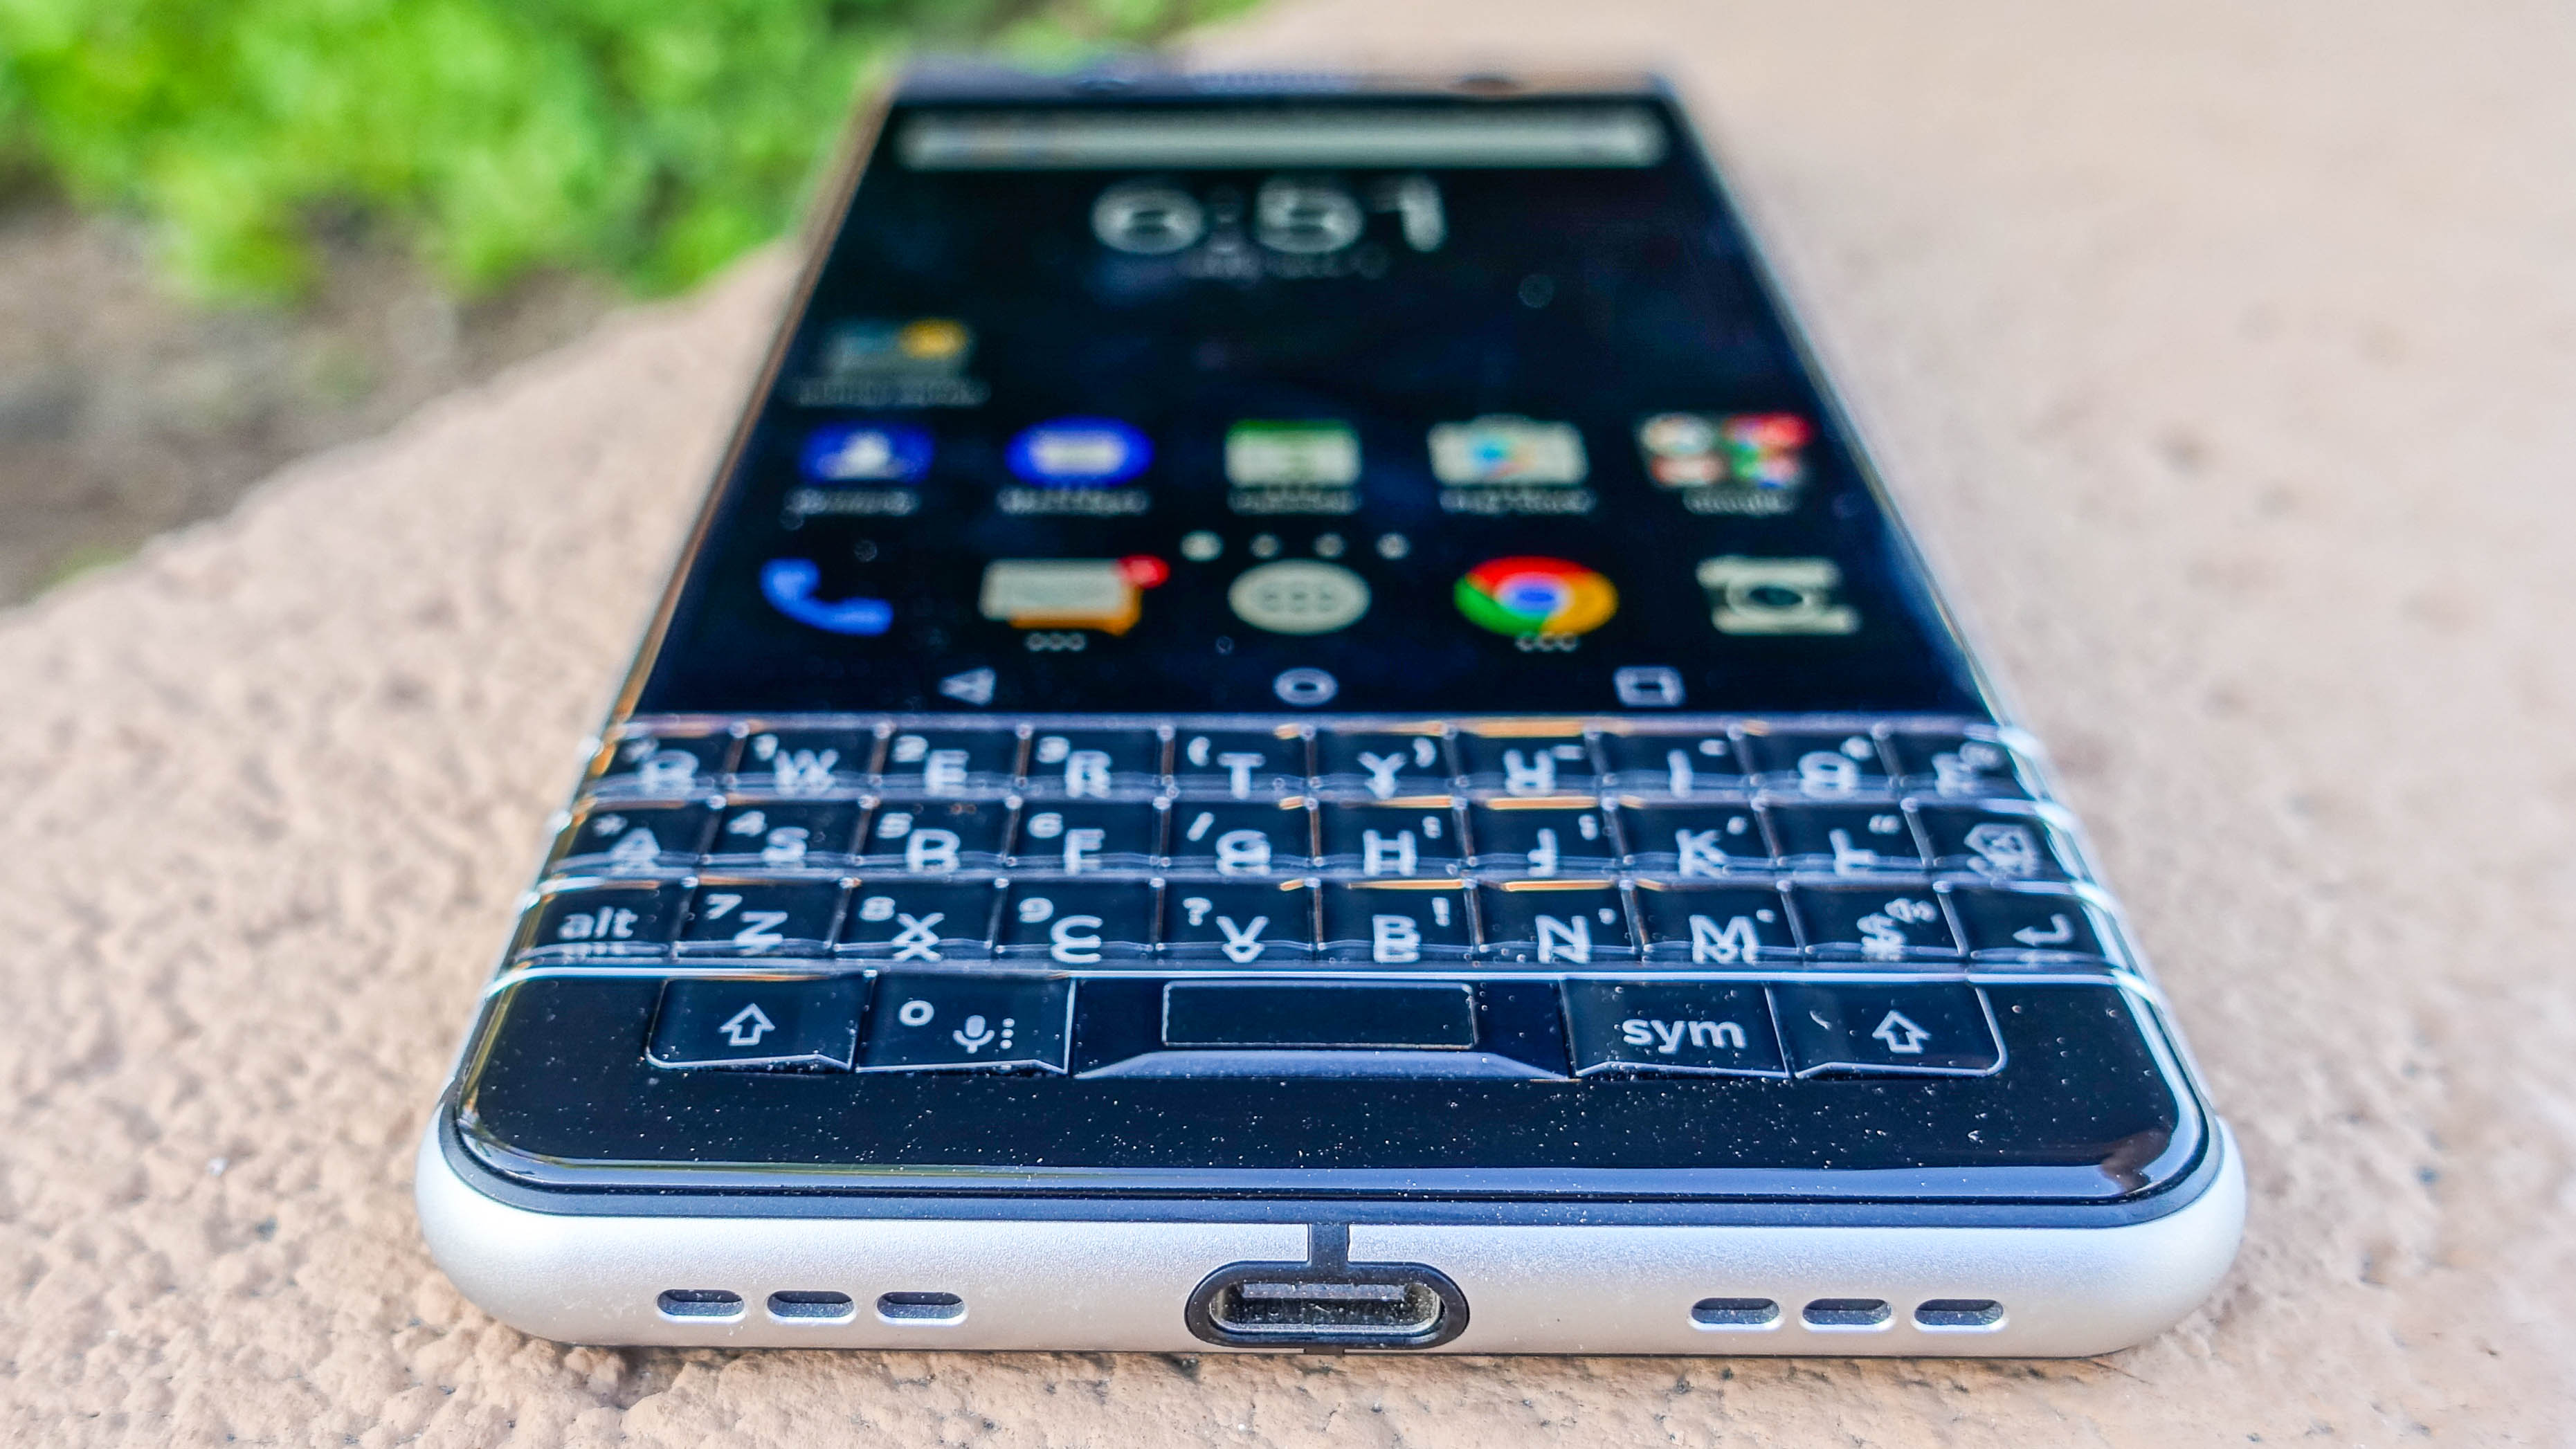 All the BlackBerry Key2 specs have just been leaked, along with the price